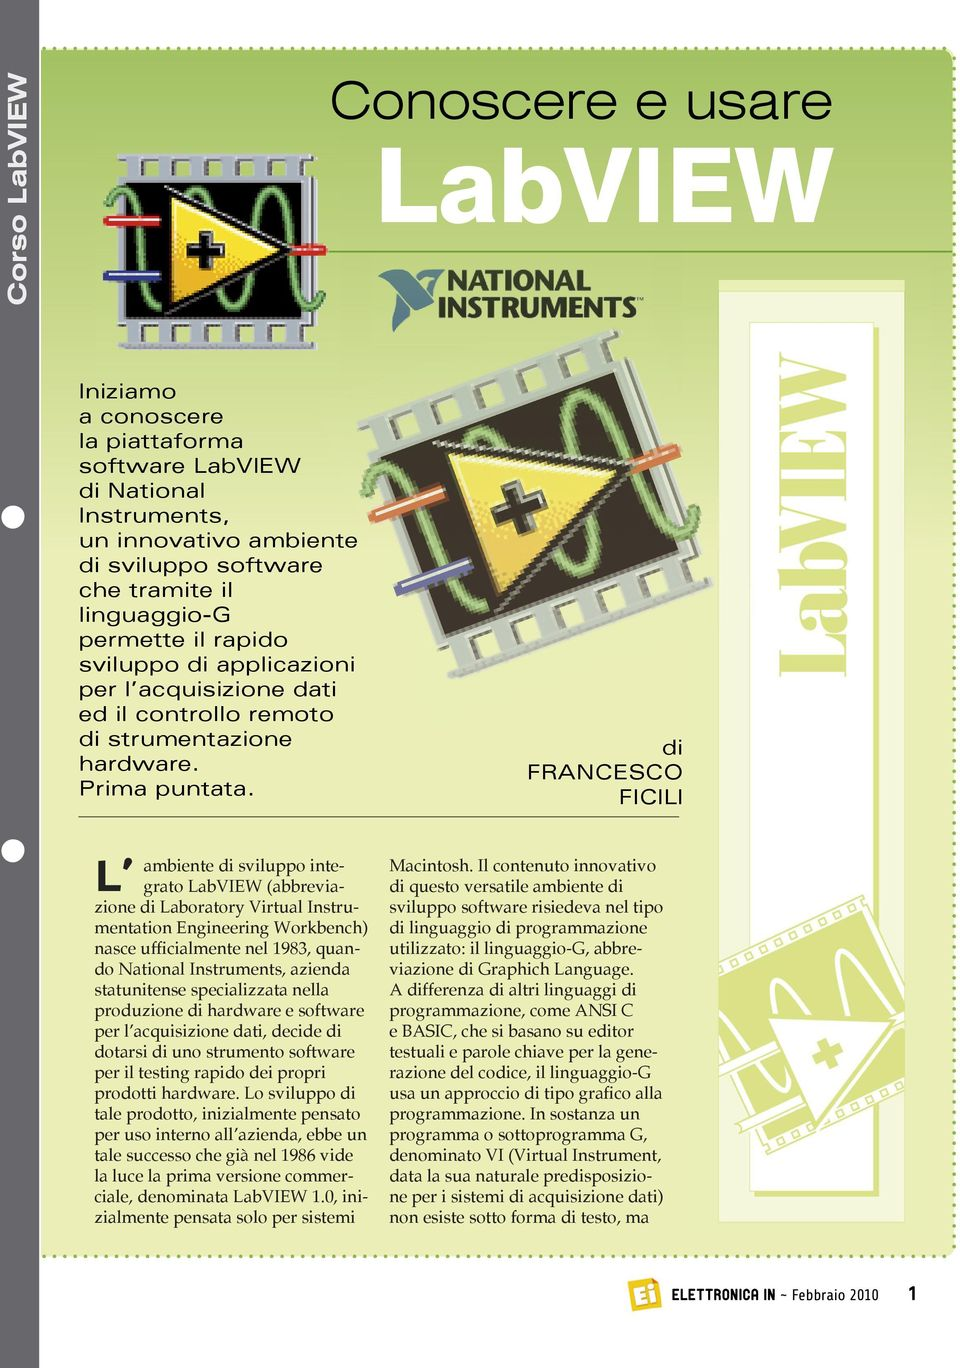 di FRANCESCO FICILI L ambiente di sviluppo integrato LabVIEW (abbreviazione di Laboratory Virtual Instrumentation Engineering Workbench) nasce ufficialmente nel 1983, quando National Instruments,